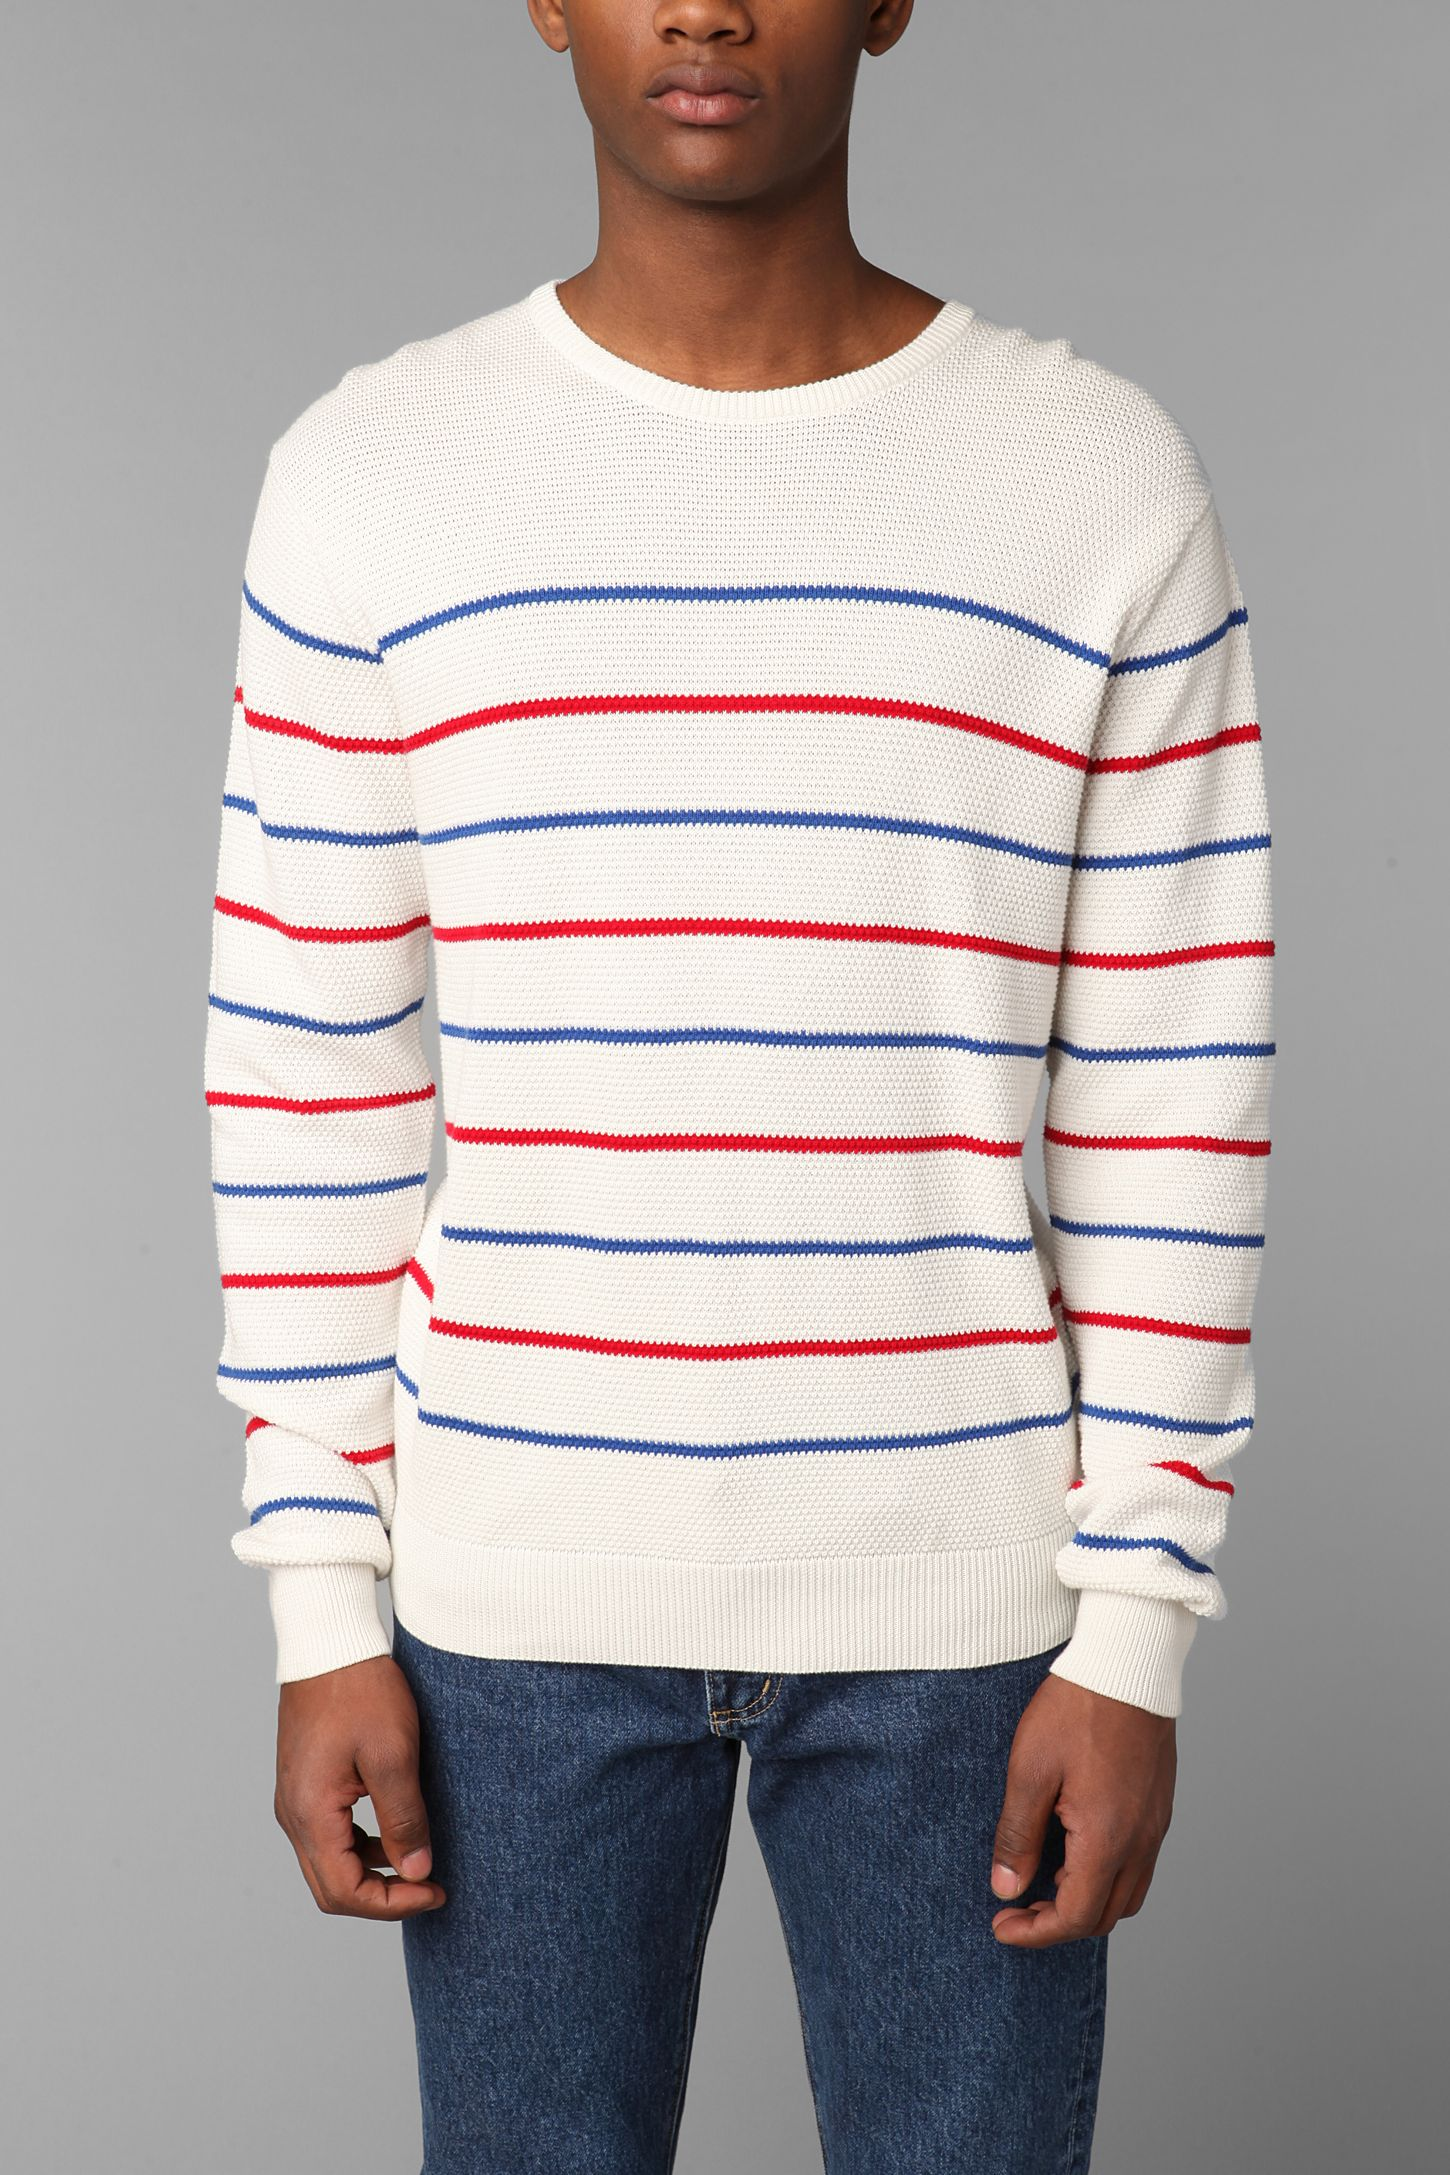 63d529e250ee4 Shades Of Grey By Micah Cohen Sailor Striped Crew-Neck Pullover ...